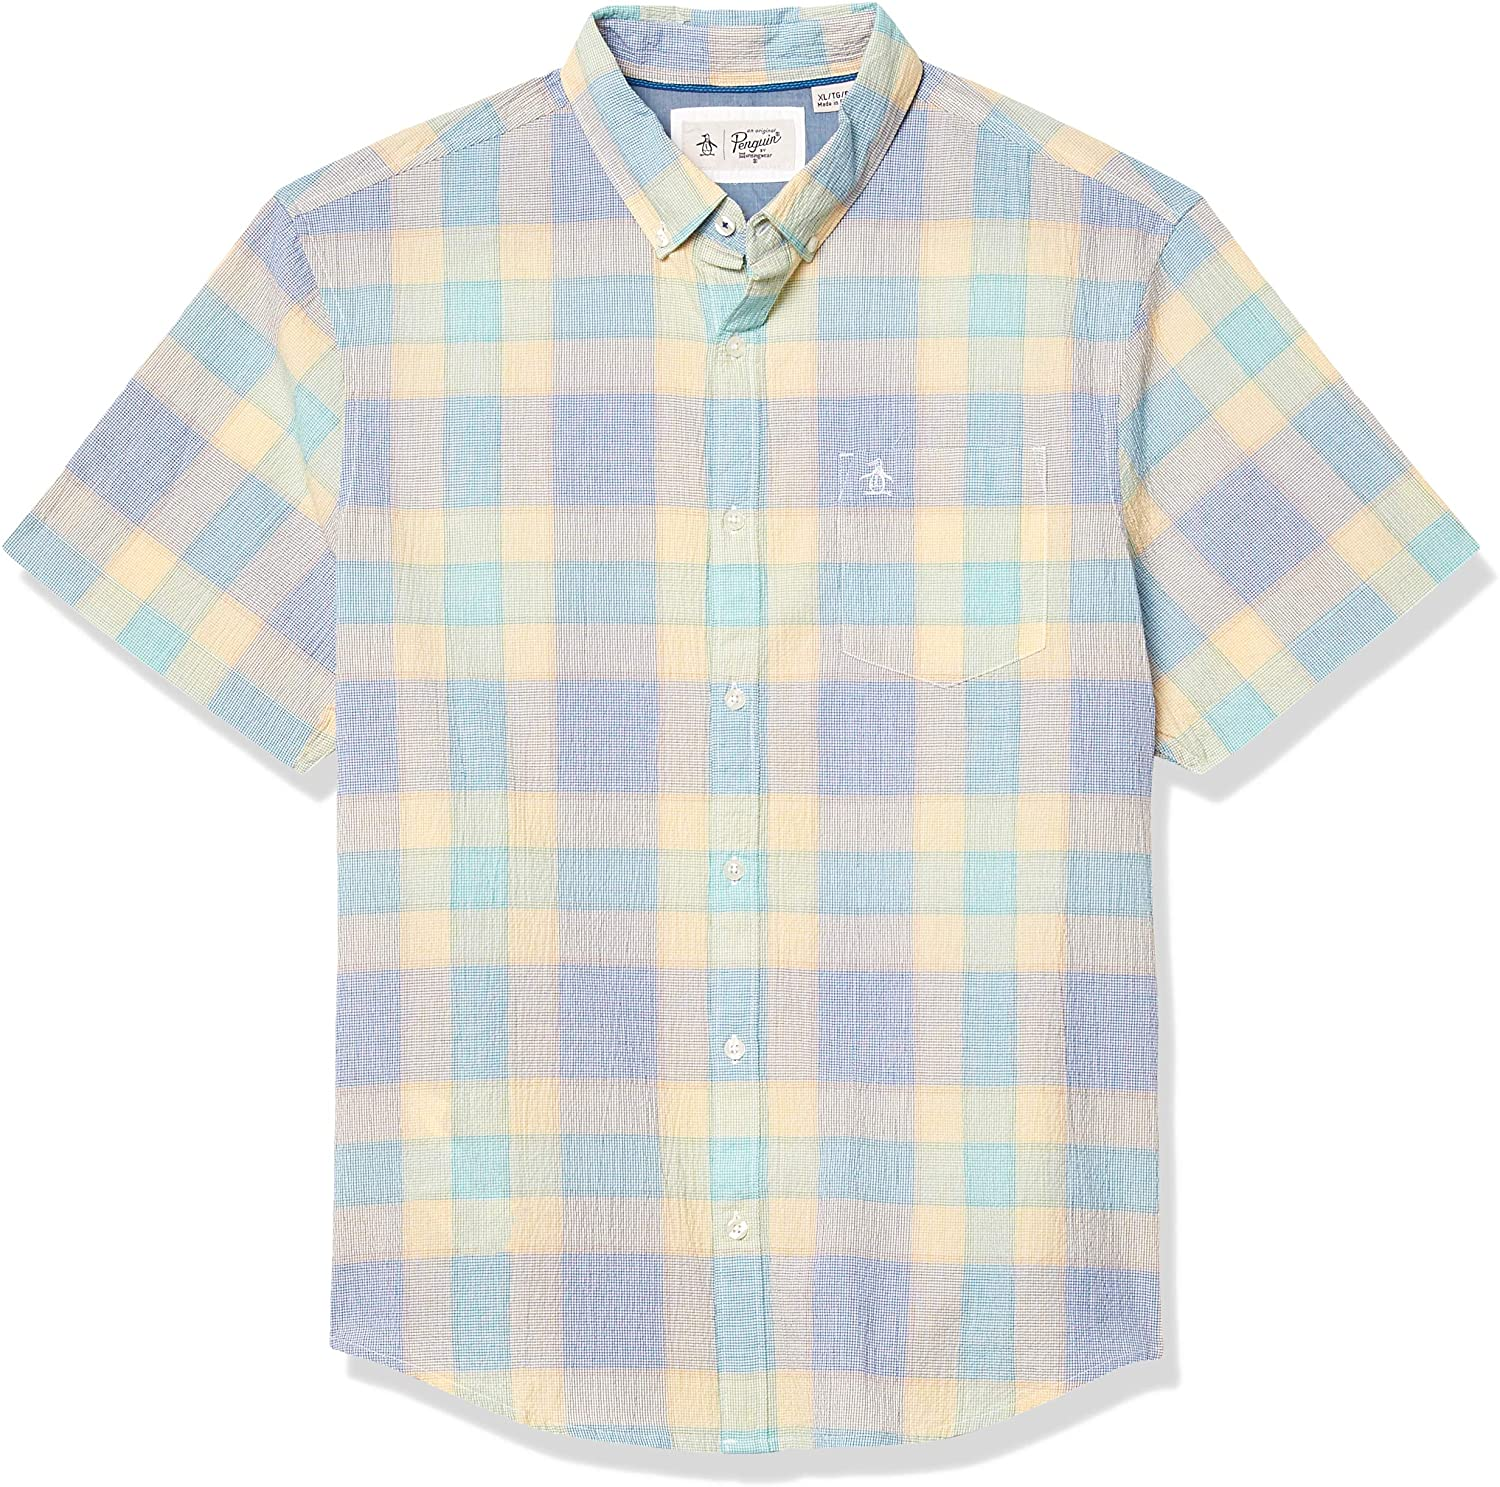 Original Penguin Men's Short Sleeve Plaid Button Down Shirt